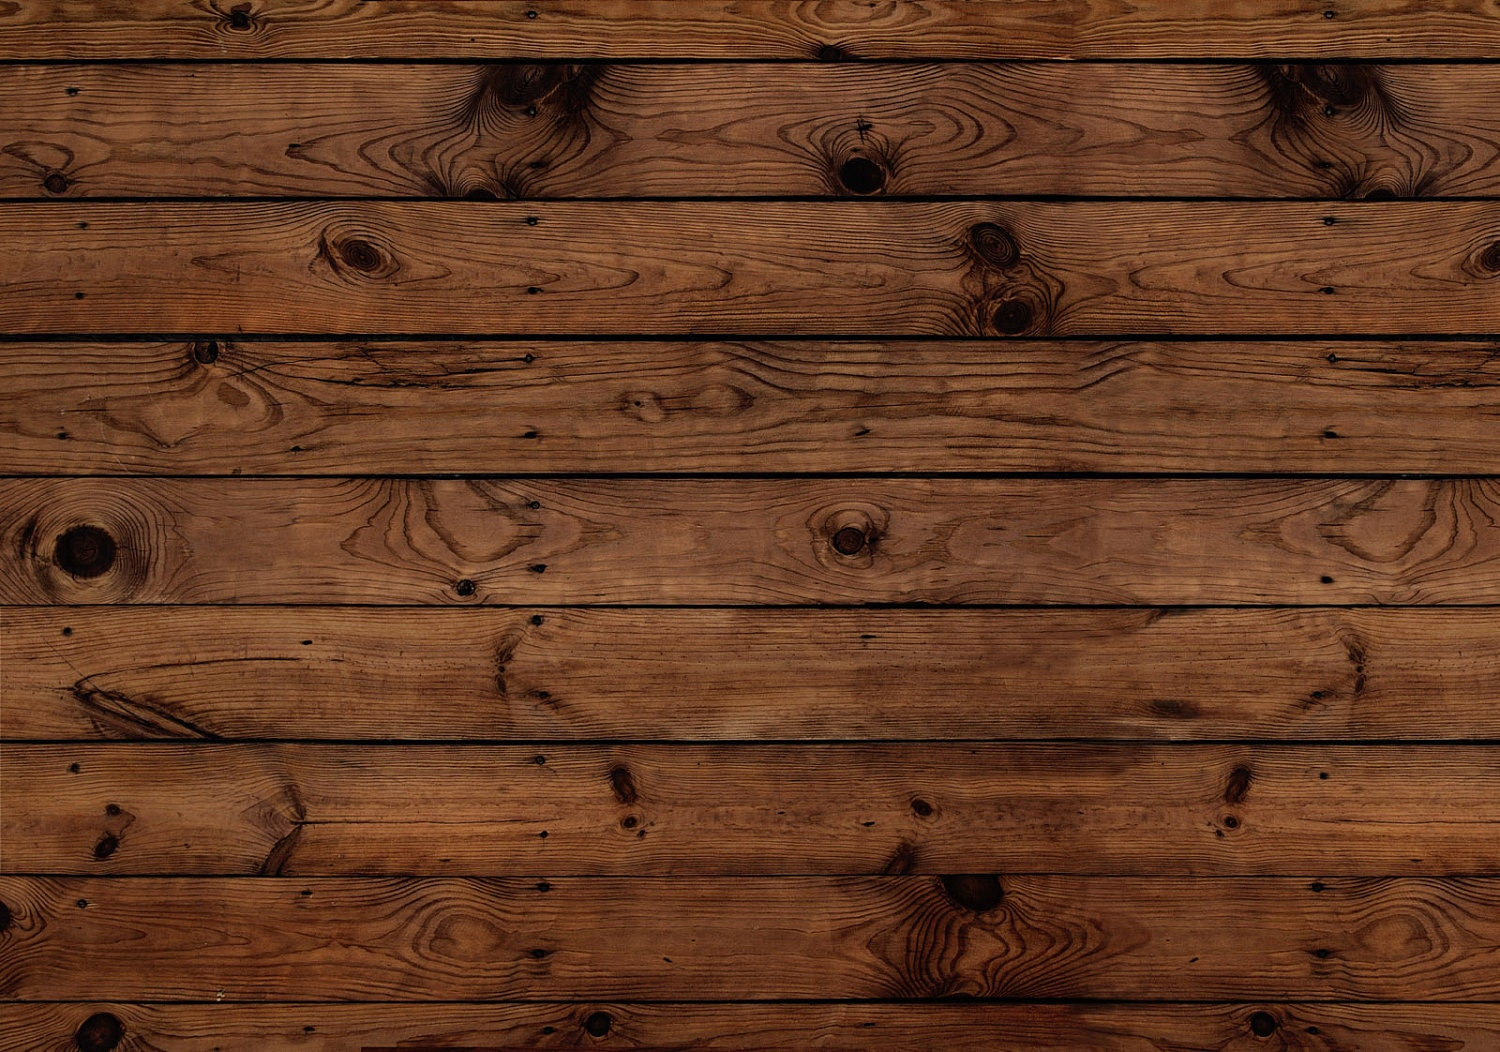 Rustic wood planks for sale